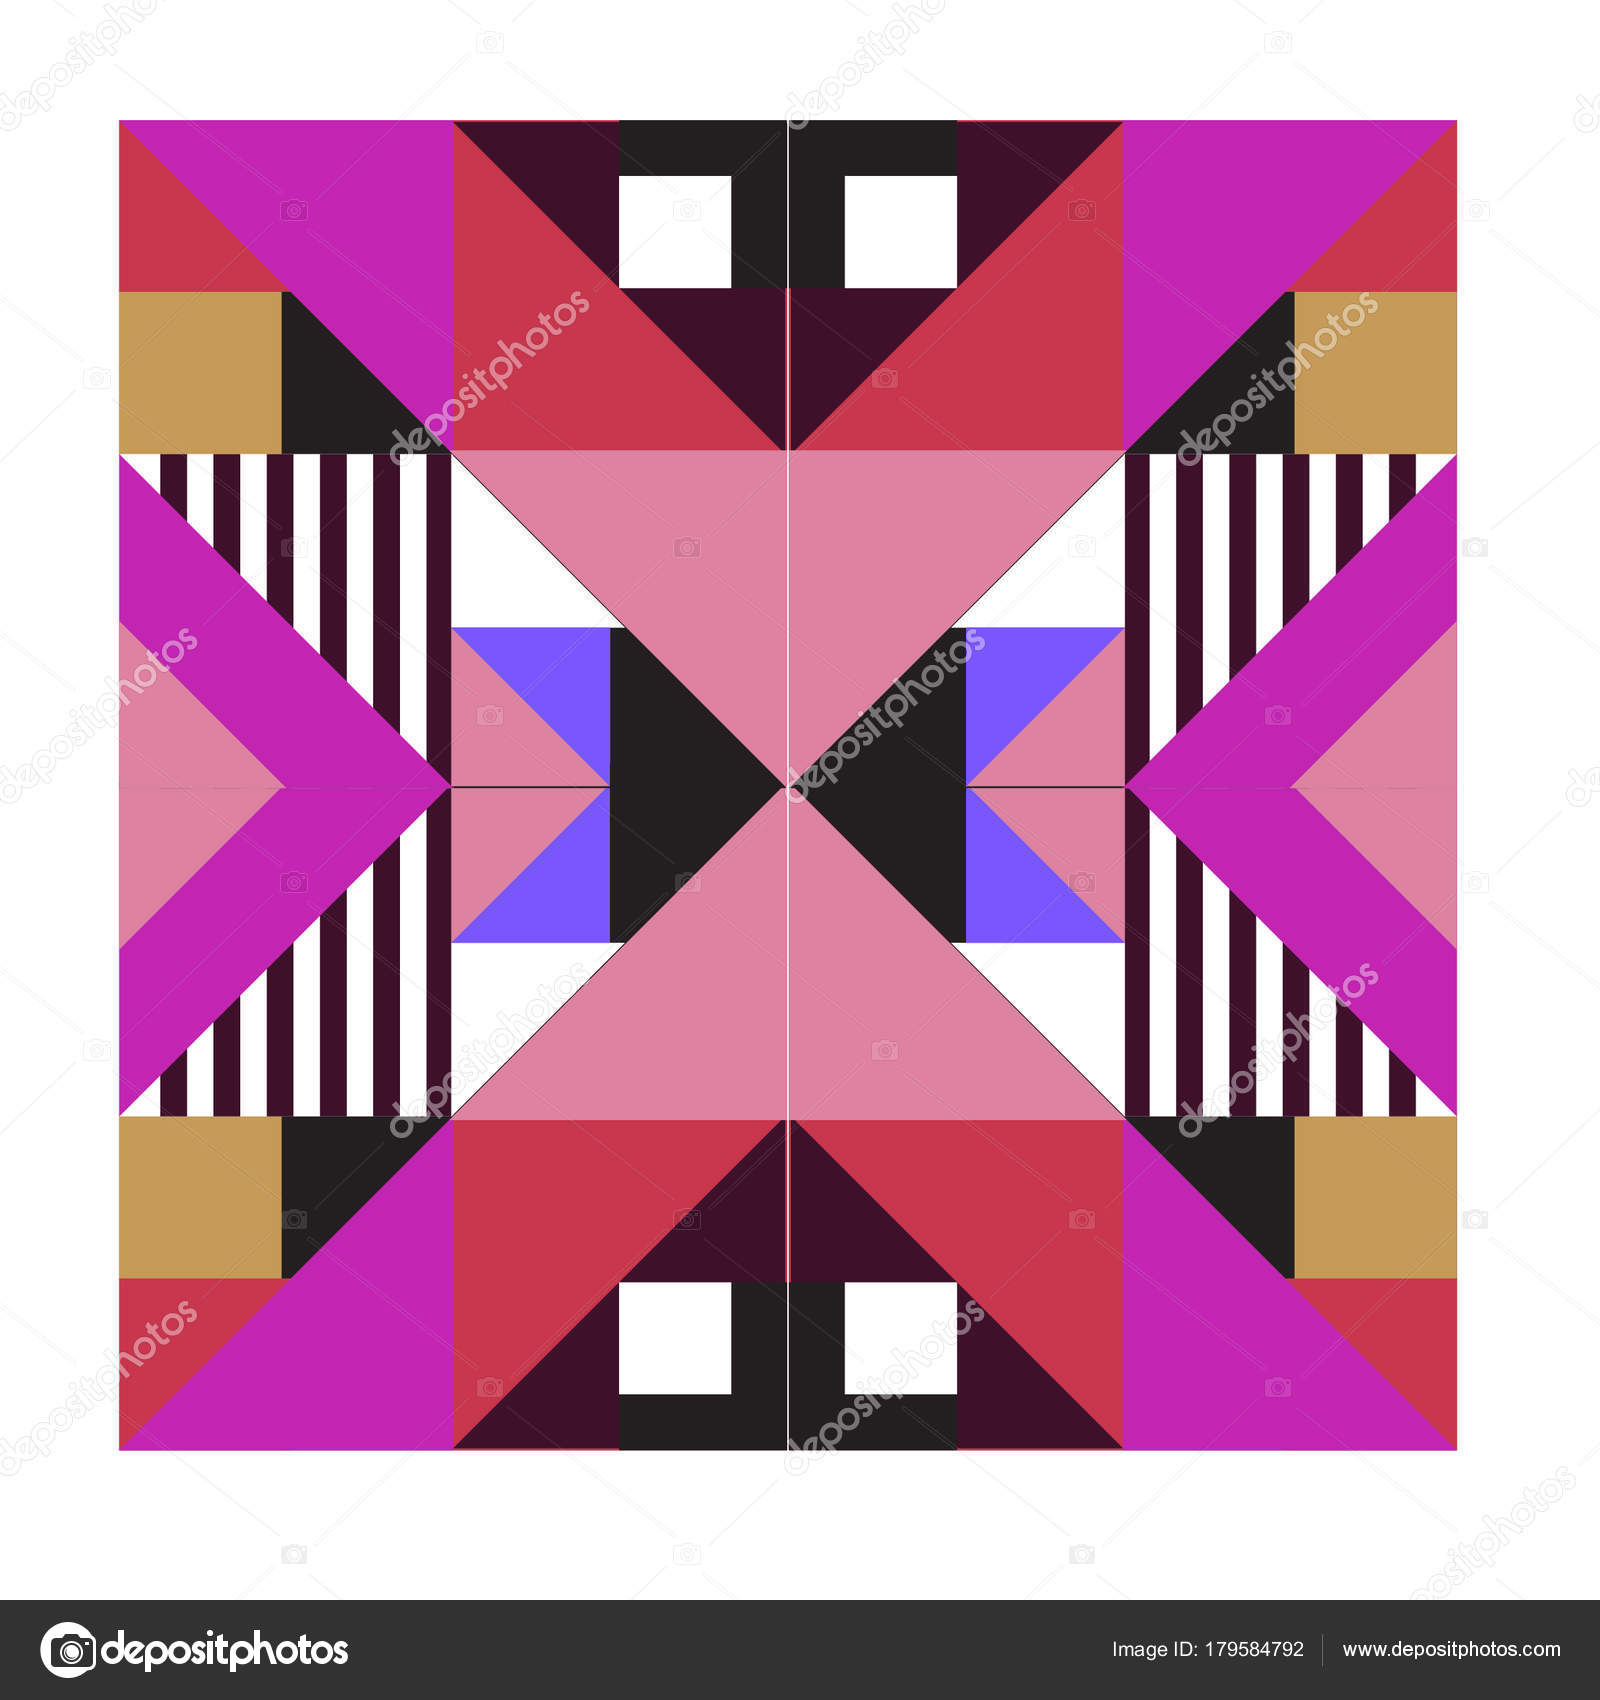 Trendy Geometric Kaleidoscope Elements Memphis Greeting Cards Design